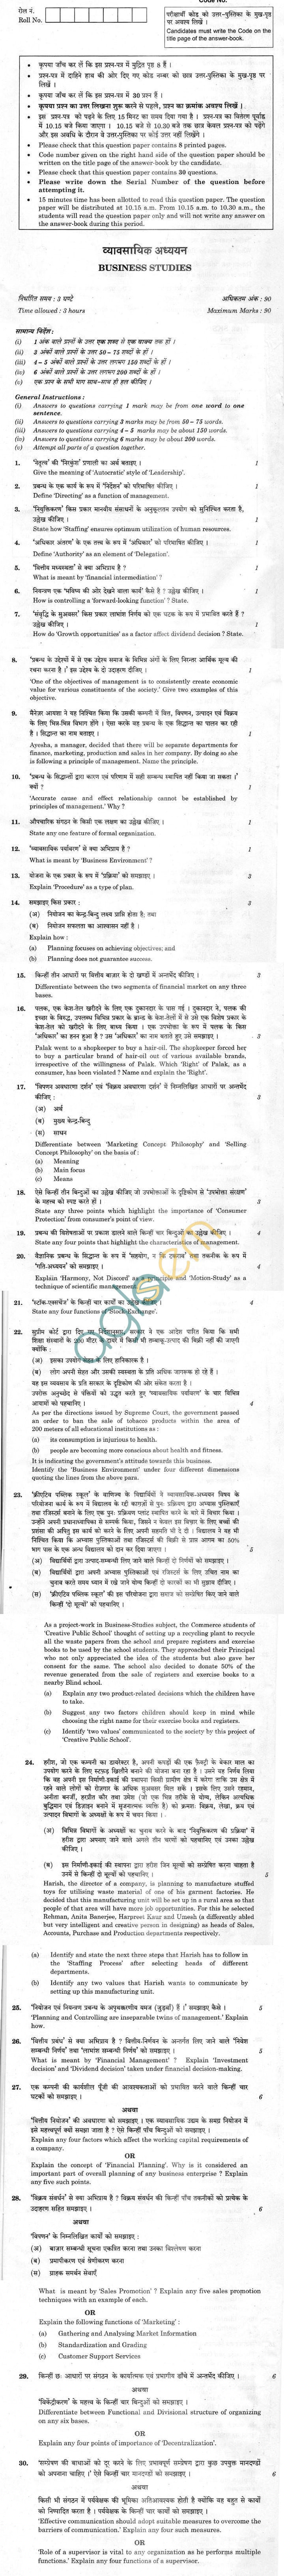 CBSE Compartment Exam 2013 Class XII Question Paper - Business Studies